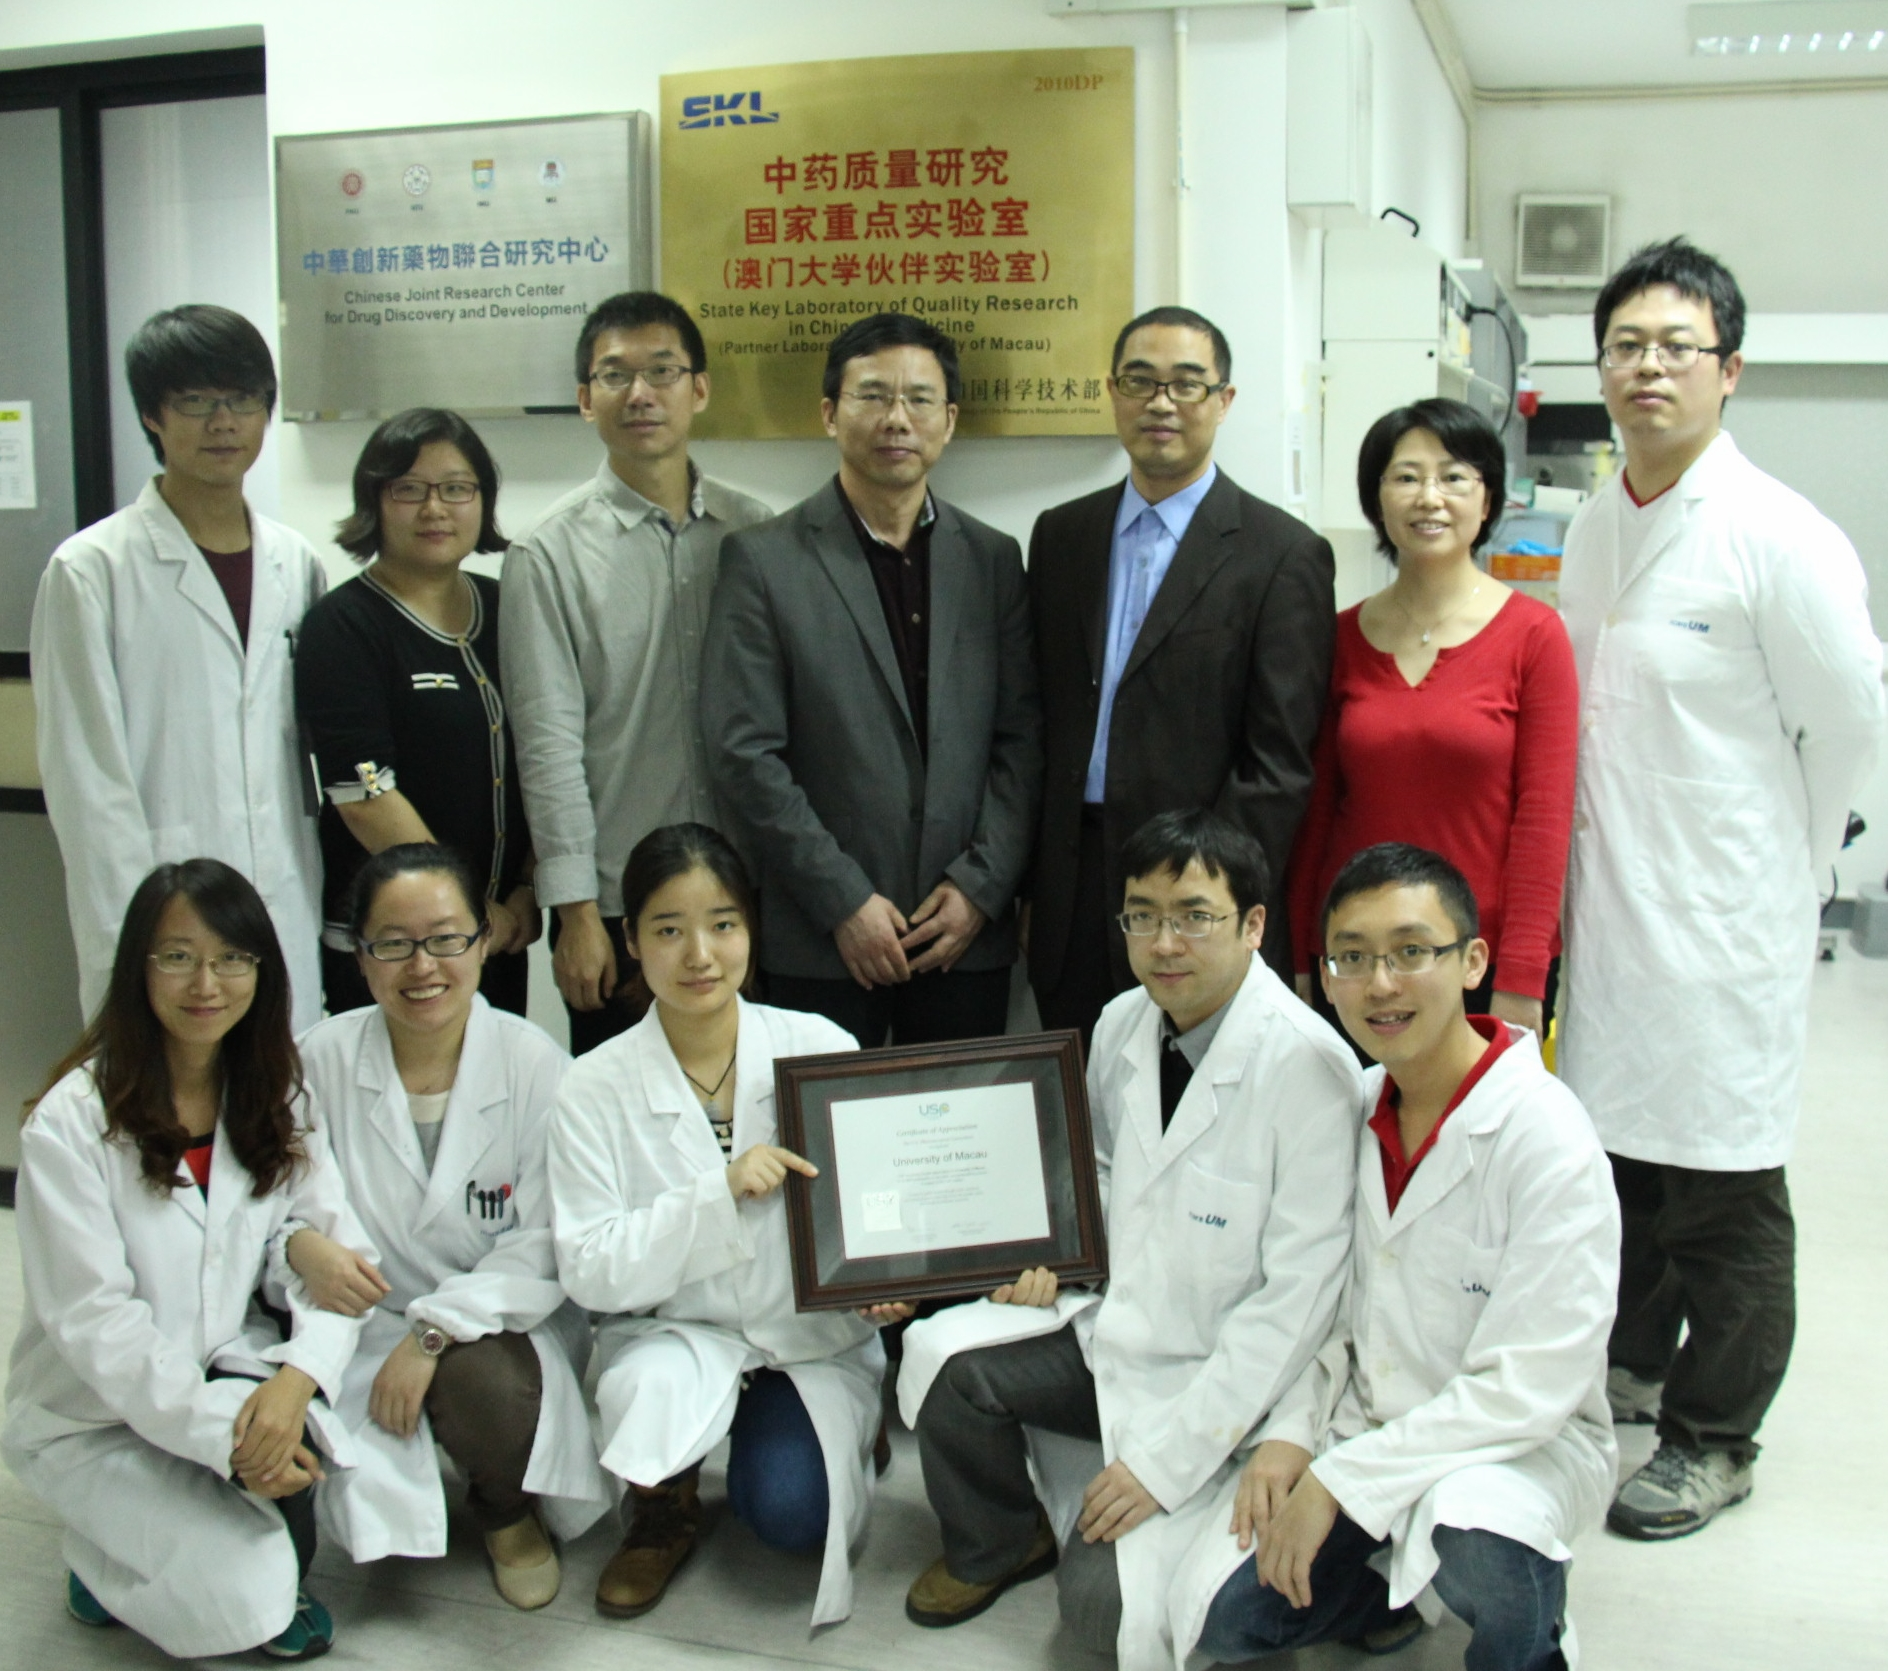 The research team from the QRCM Lab headed by Prof. Li Shaoping (back row, 4th from left)